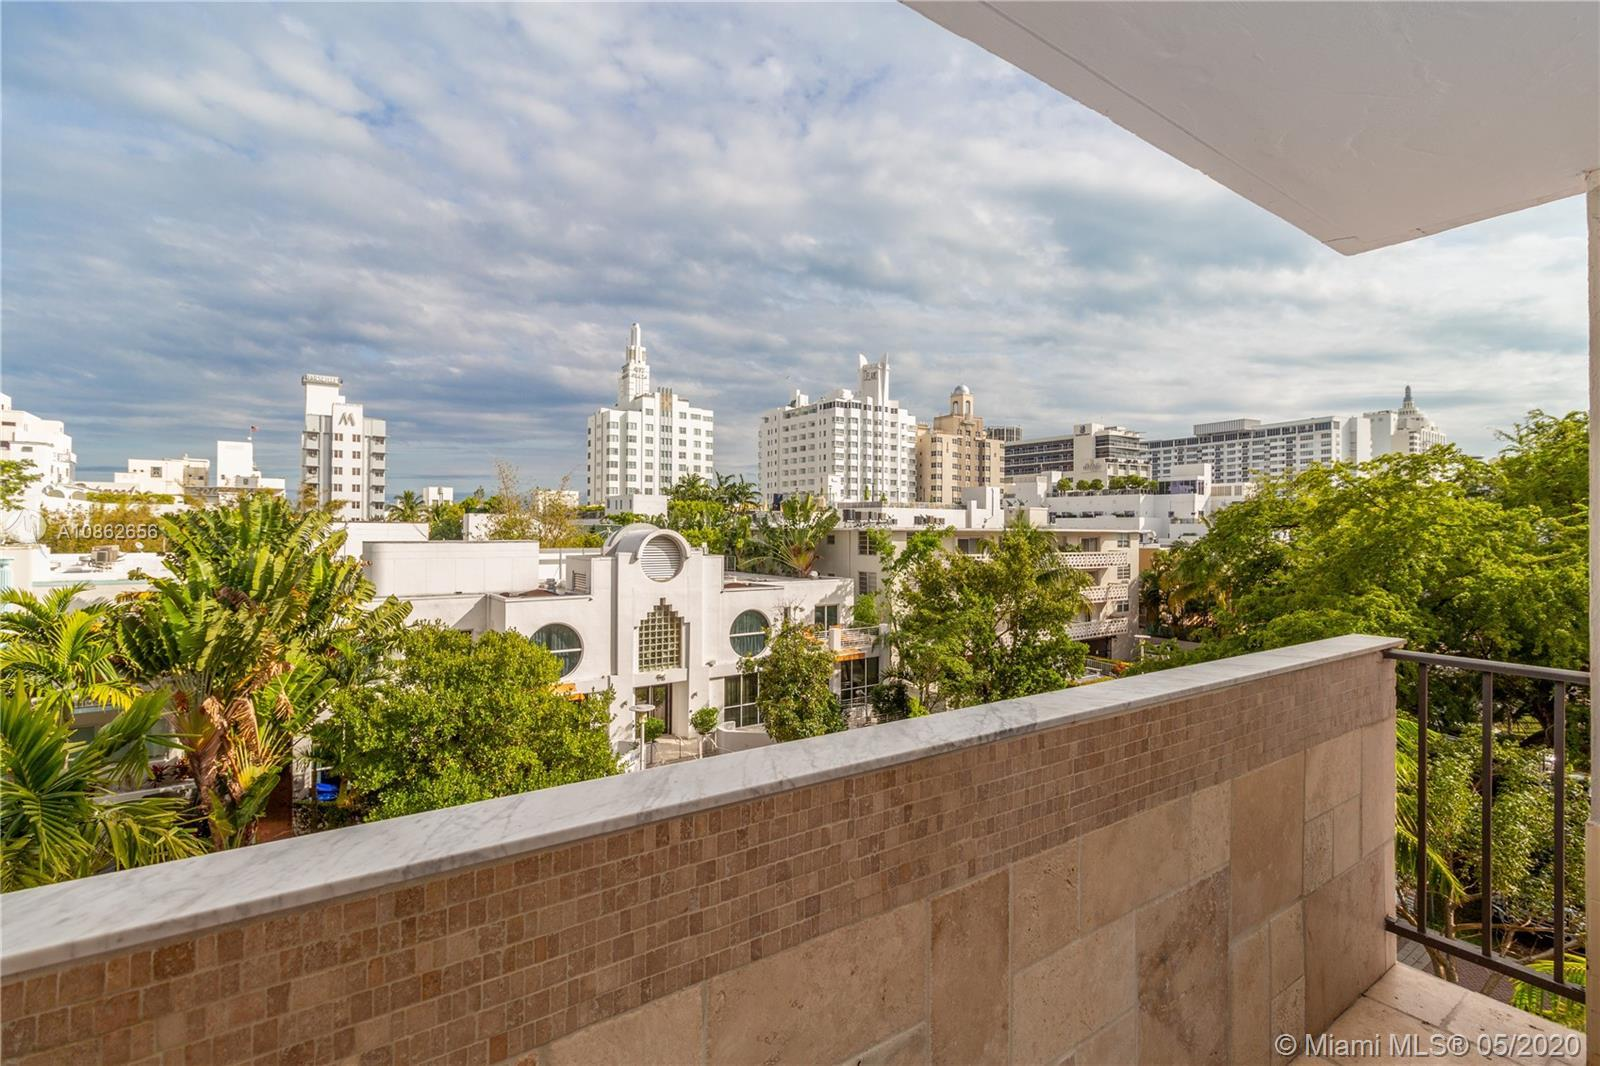 Spacious corner unit in the heart of South Beach. Open floorplan w/potential to convert to 2 bedroom